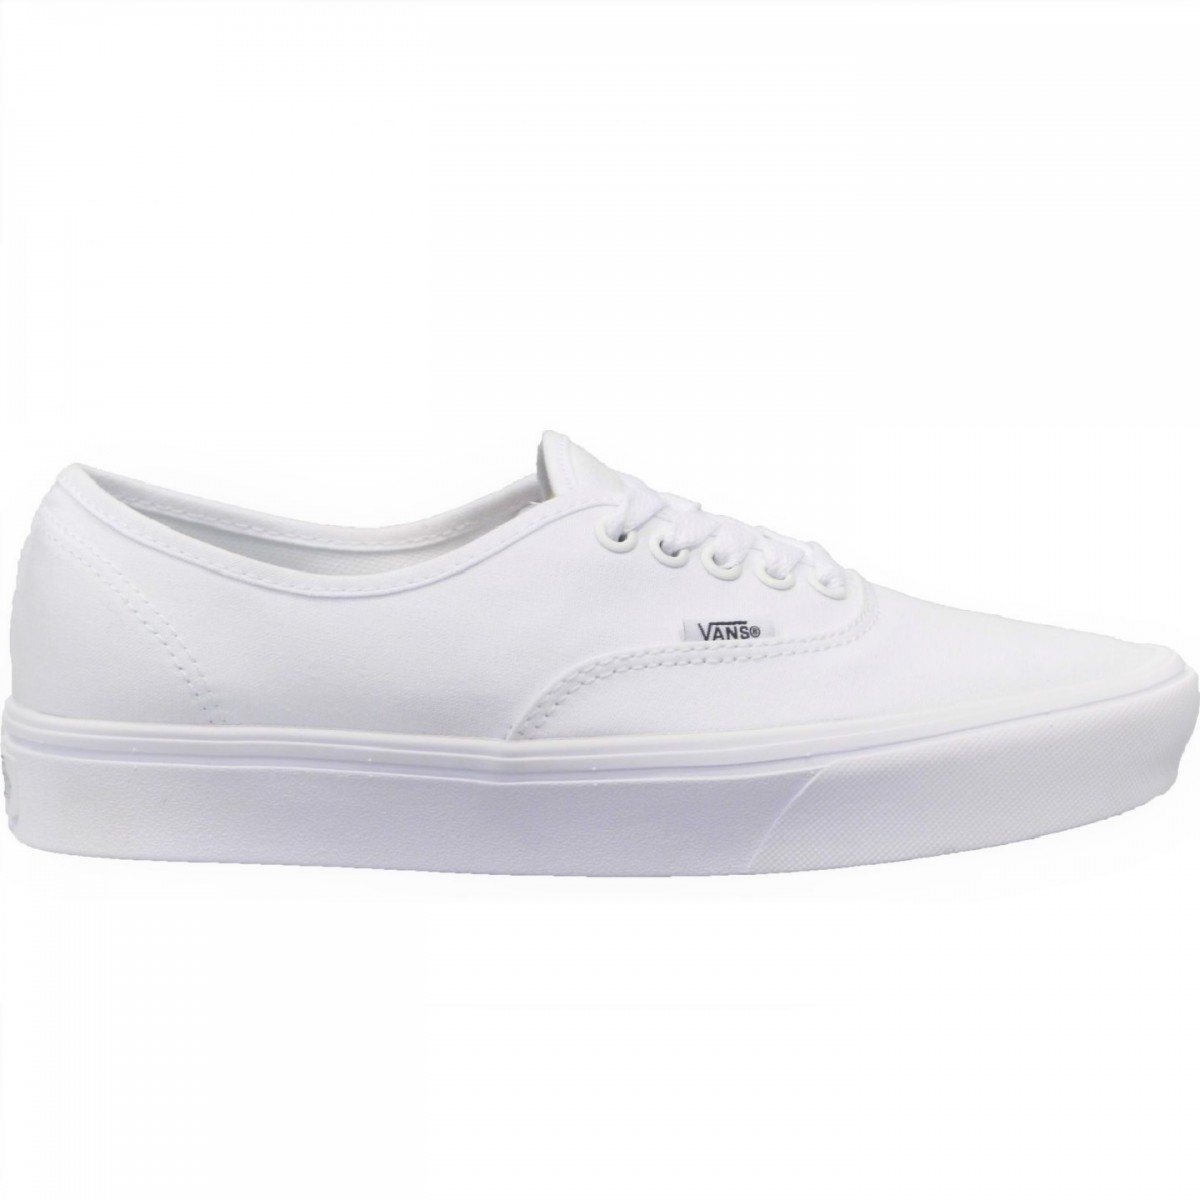 Vans ComfyCush Authentic Sneaker